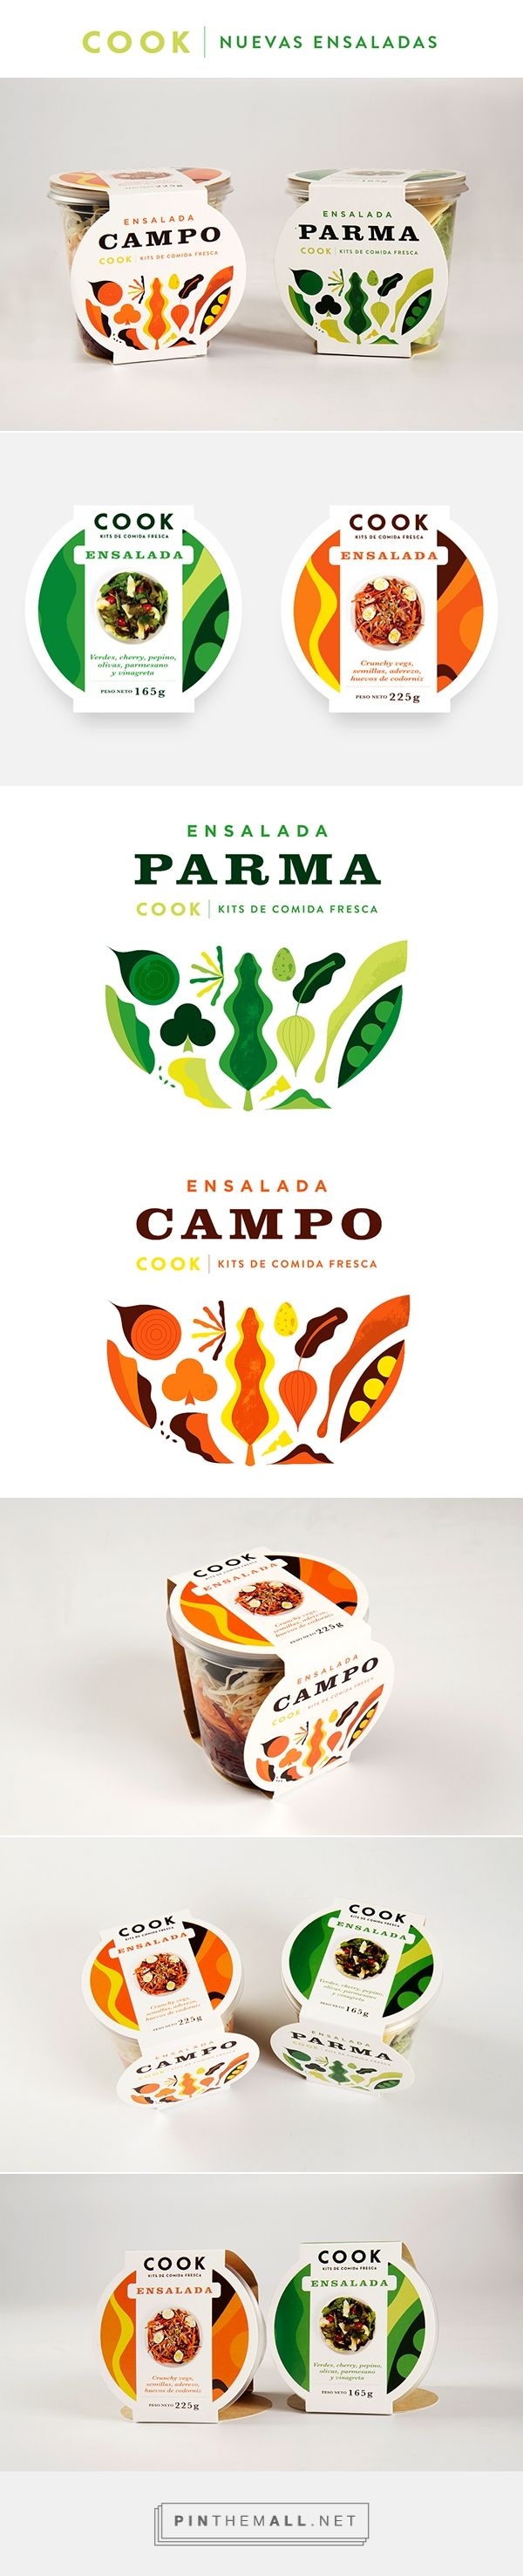 COOK ENSALADAS on Behance - created via http://pinthemall.net